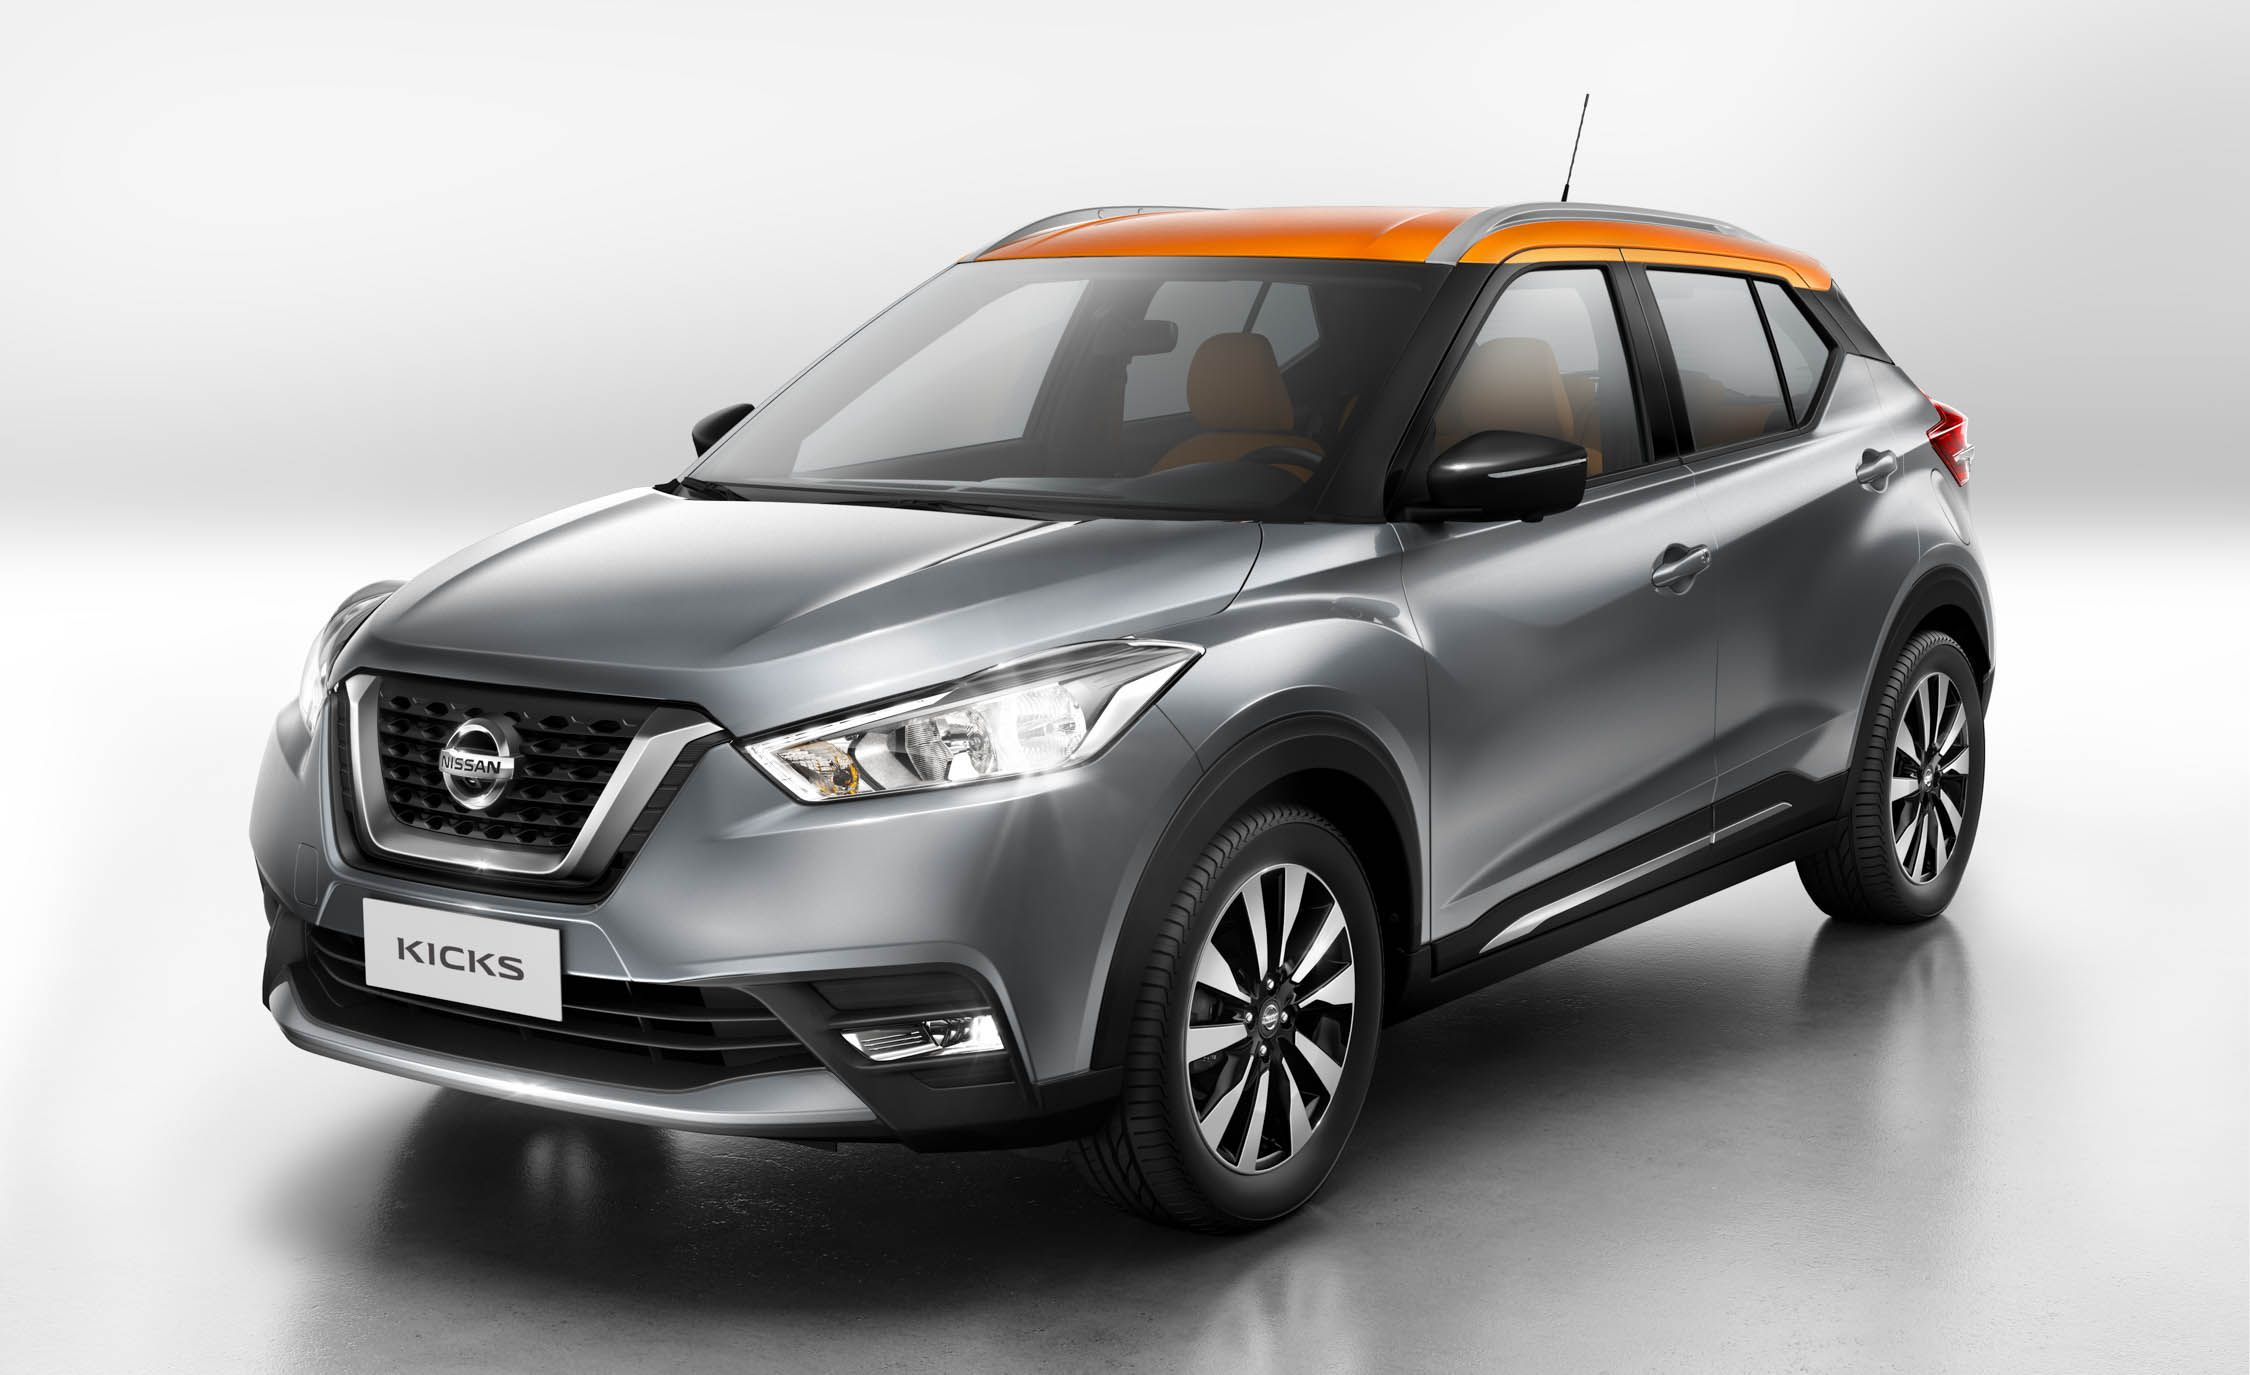 Worksheet. Nissan Shows Kicks SUV for Brazil Is It Coming to the US